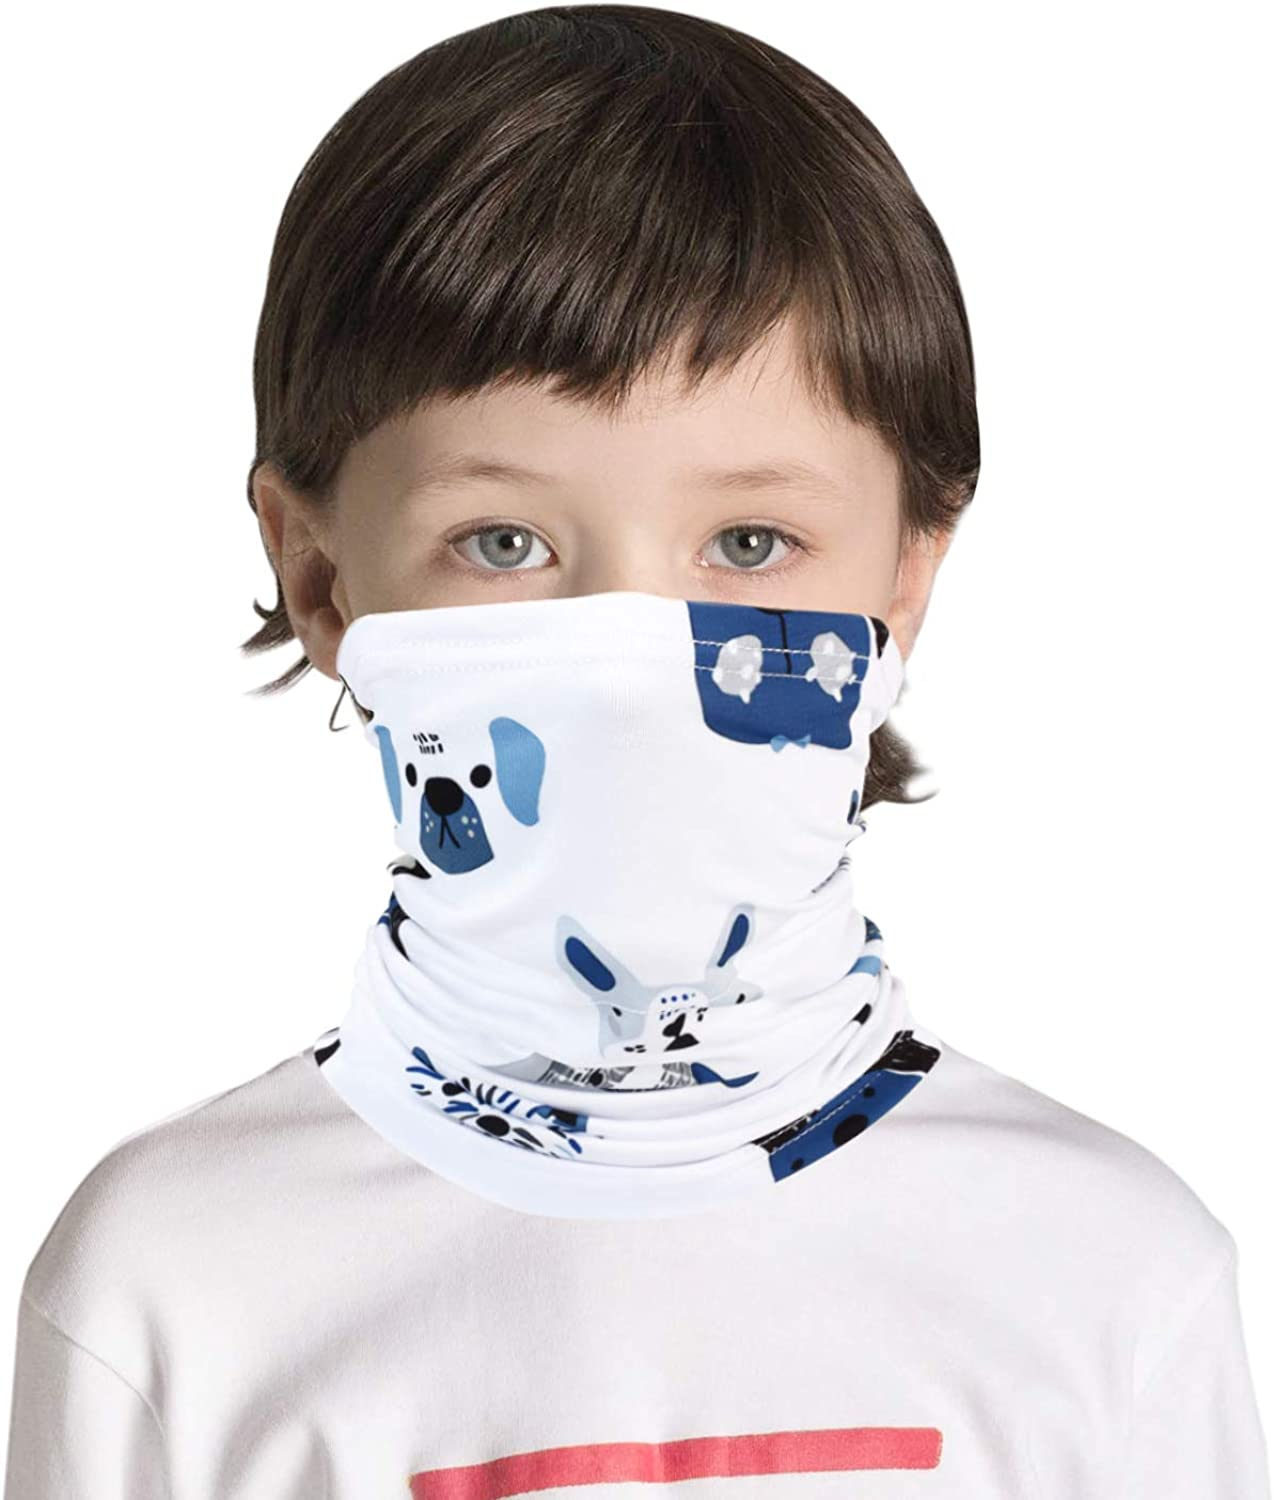 Kids Neck Gaiter Boys And Girls, Kids Bandana Face Cover Scarf Summer UV Protection For Outdoor Activities